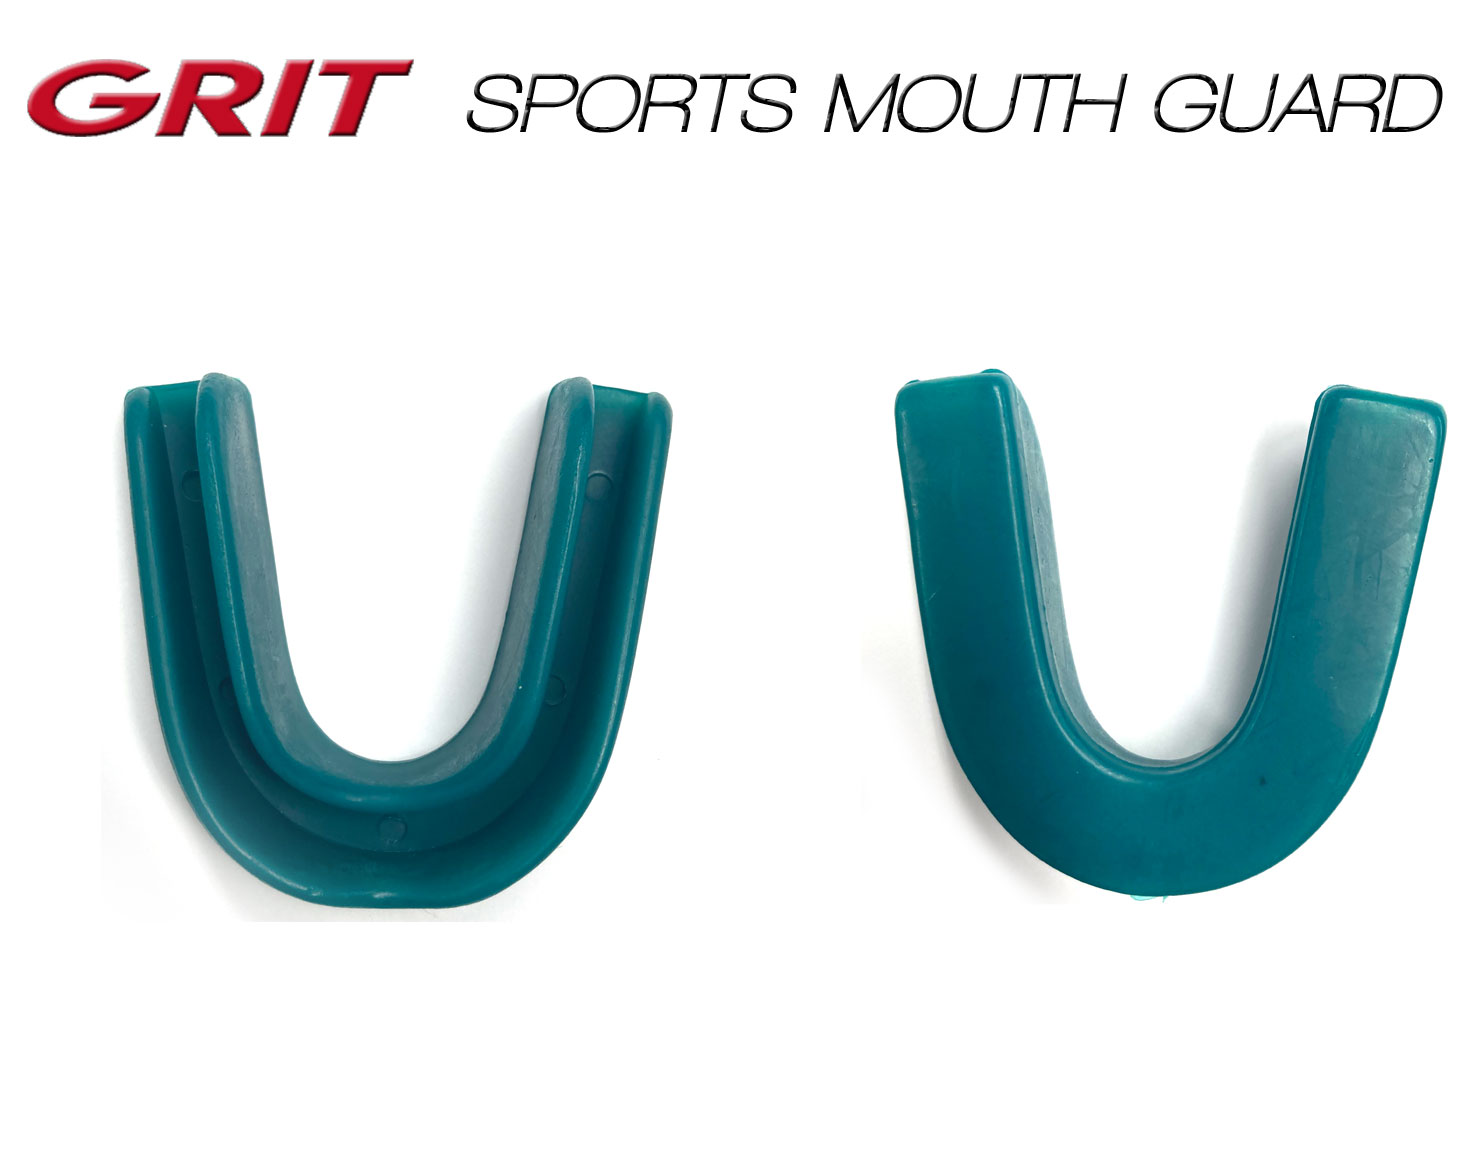 GRIT SPORTS MOUTH GUARD GREEN